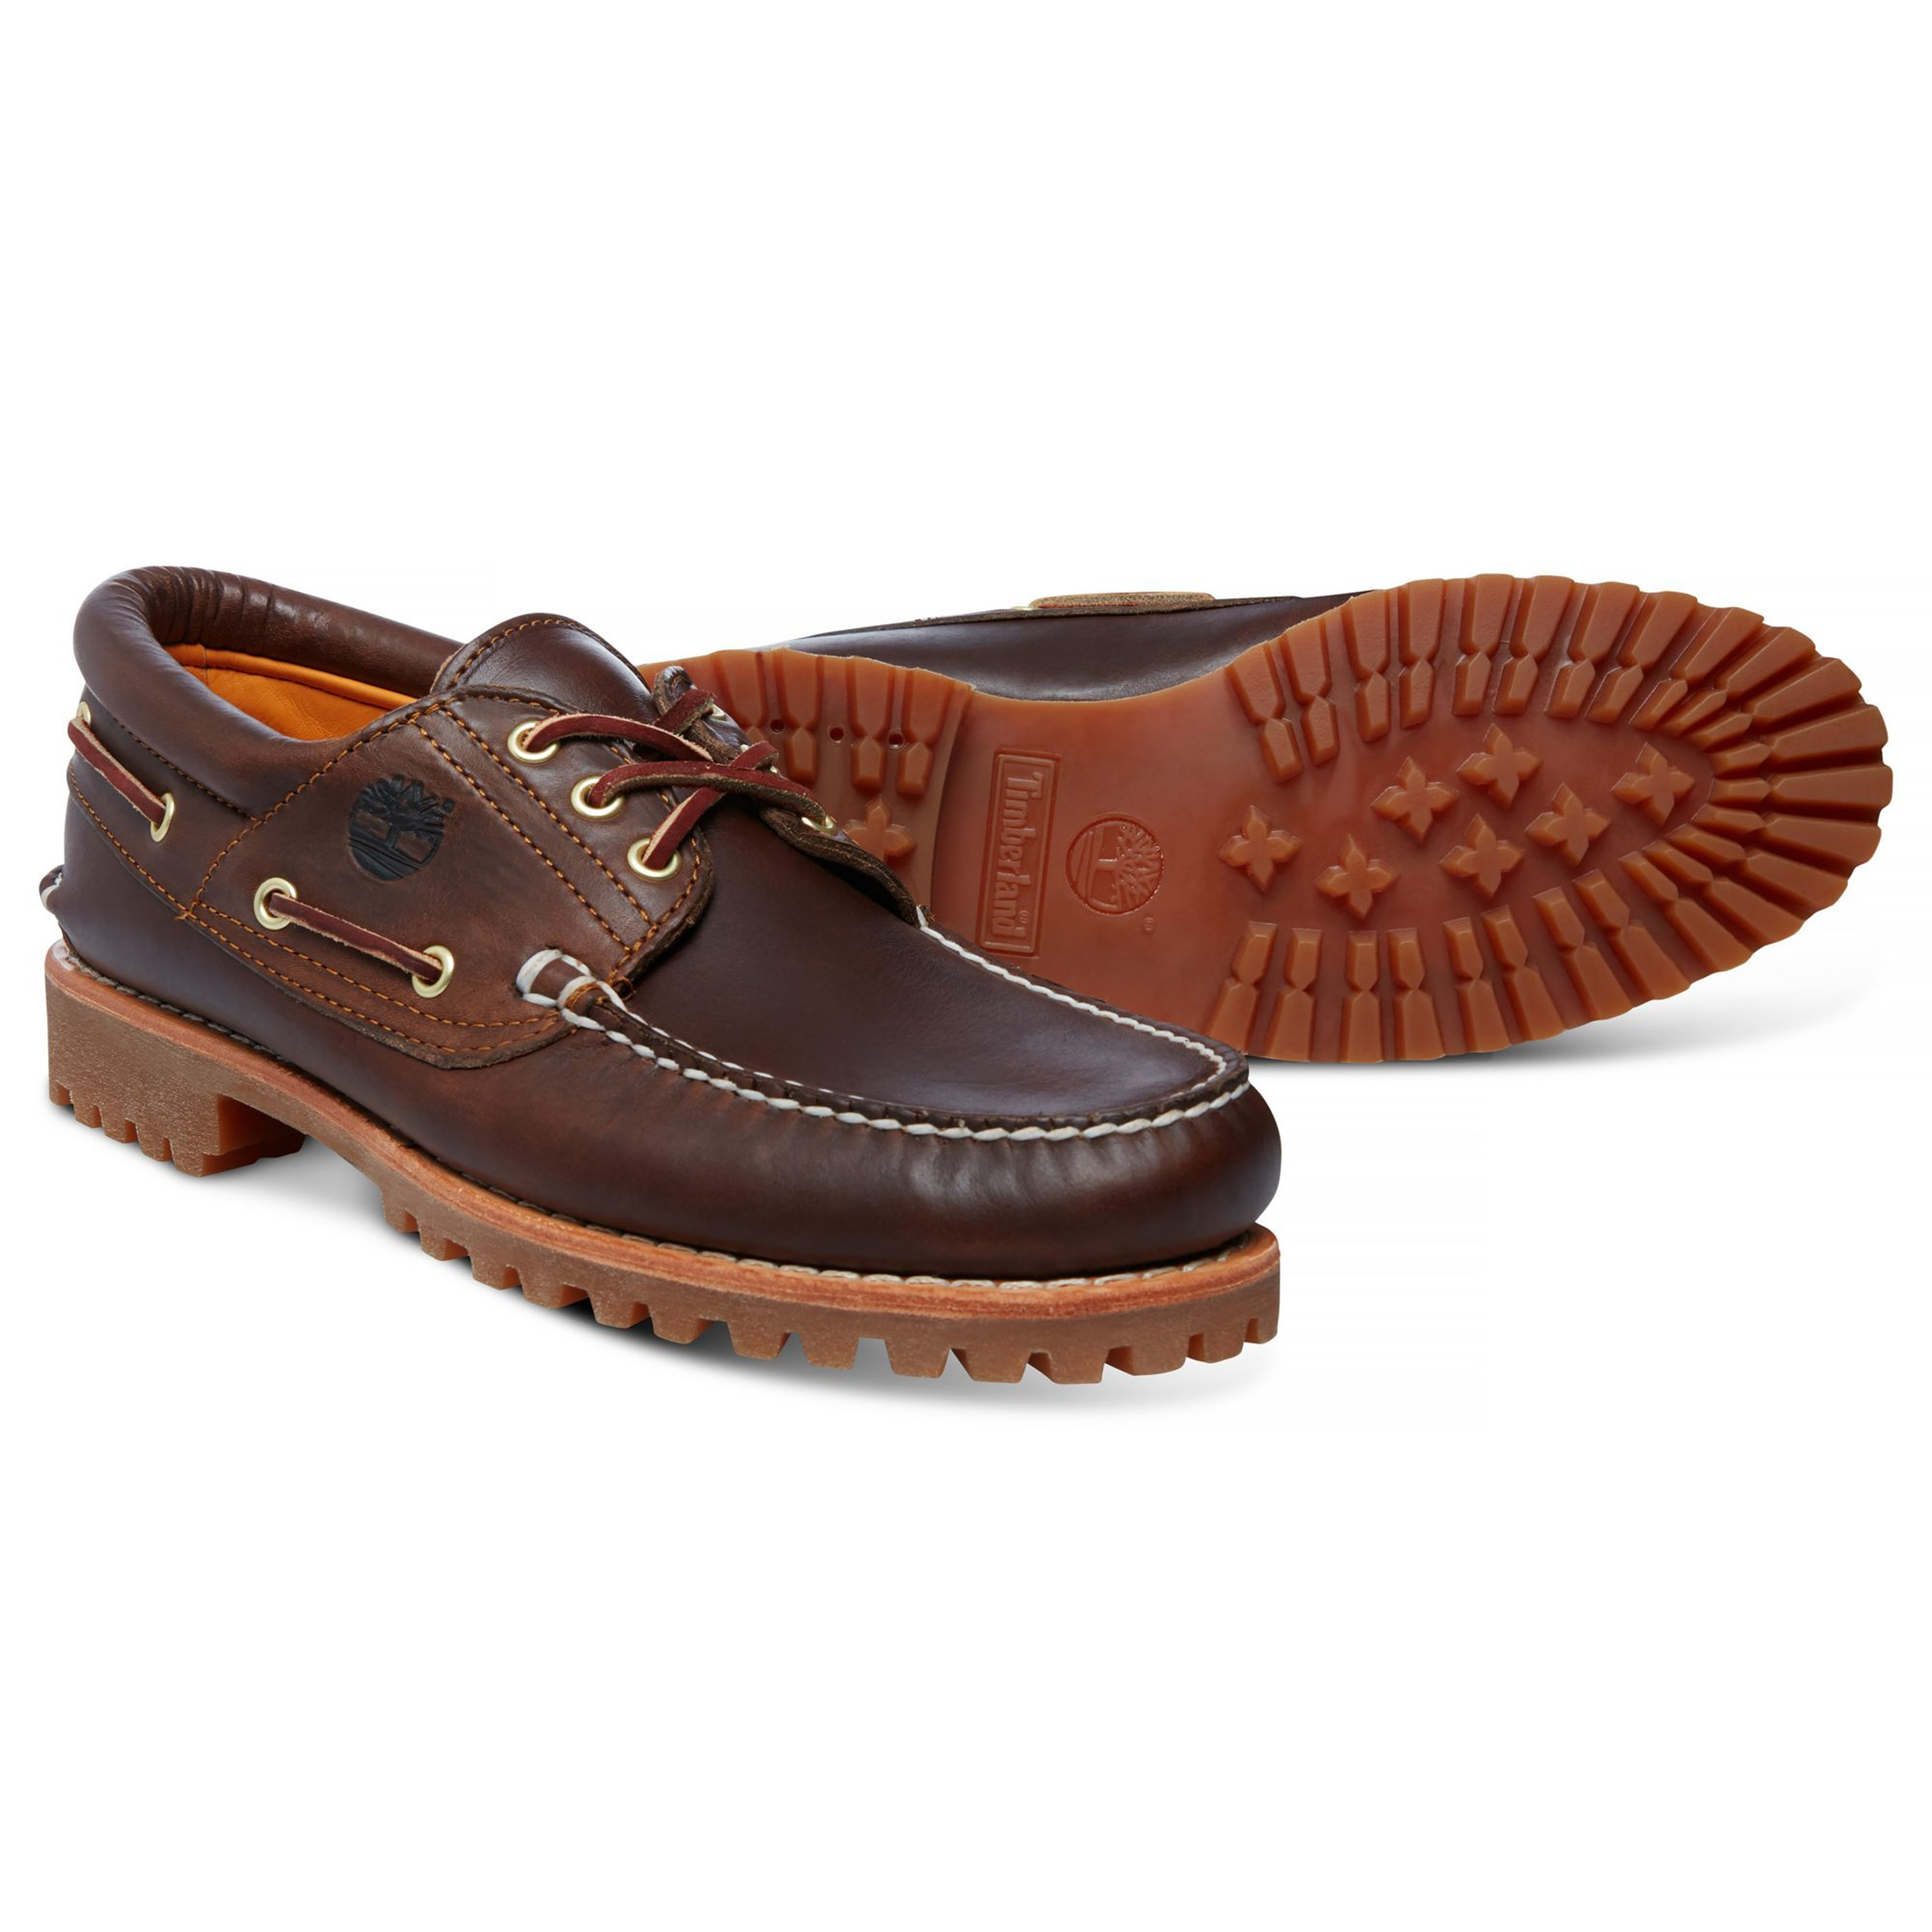 348bd388421c Timberland Mens Classic 3 Eye Leather Boat Shoes Shoes Brown